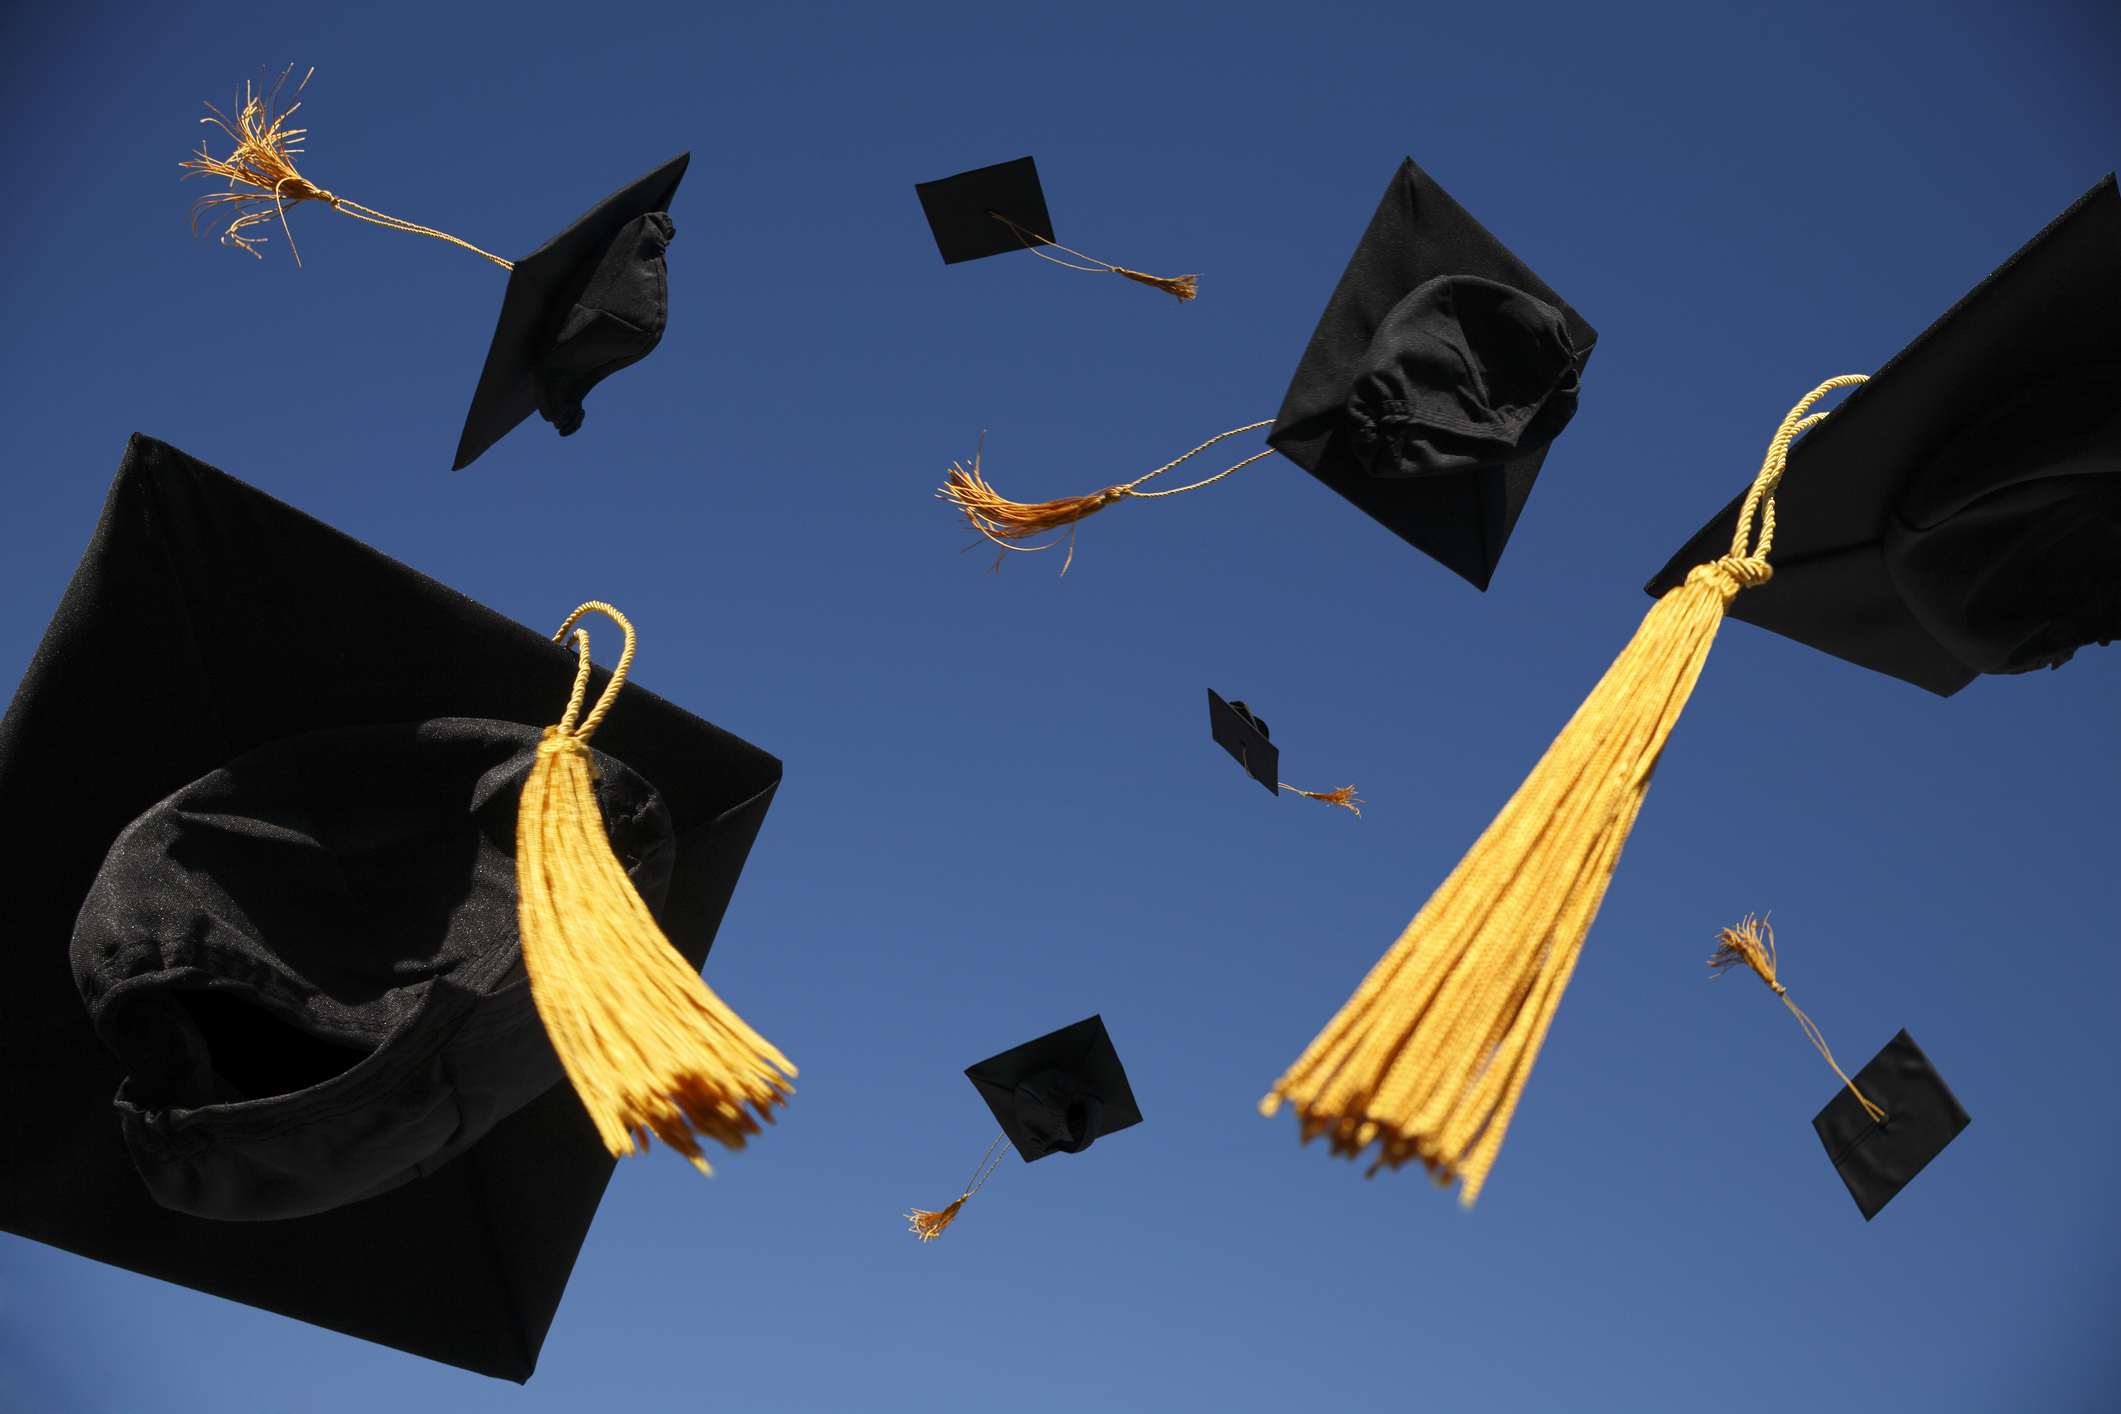 Graduation caps stock image (Getty Images)